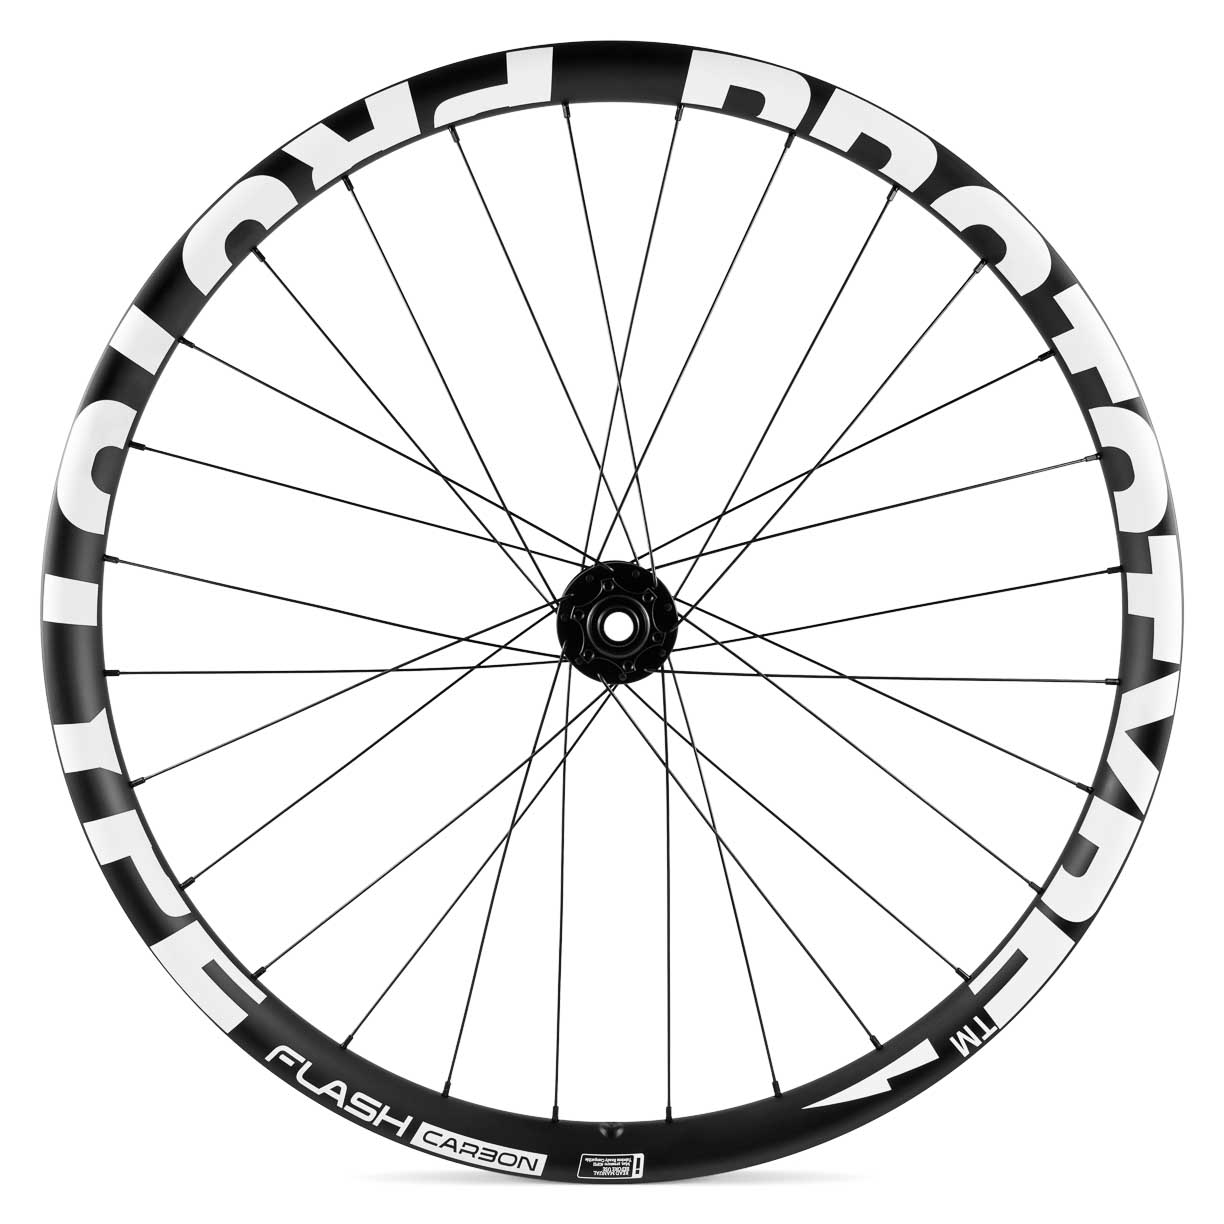 MTB Wheel Carbon TEAM 29r Tubular (Lefty)